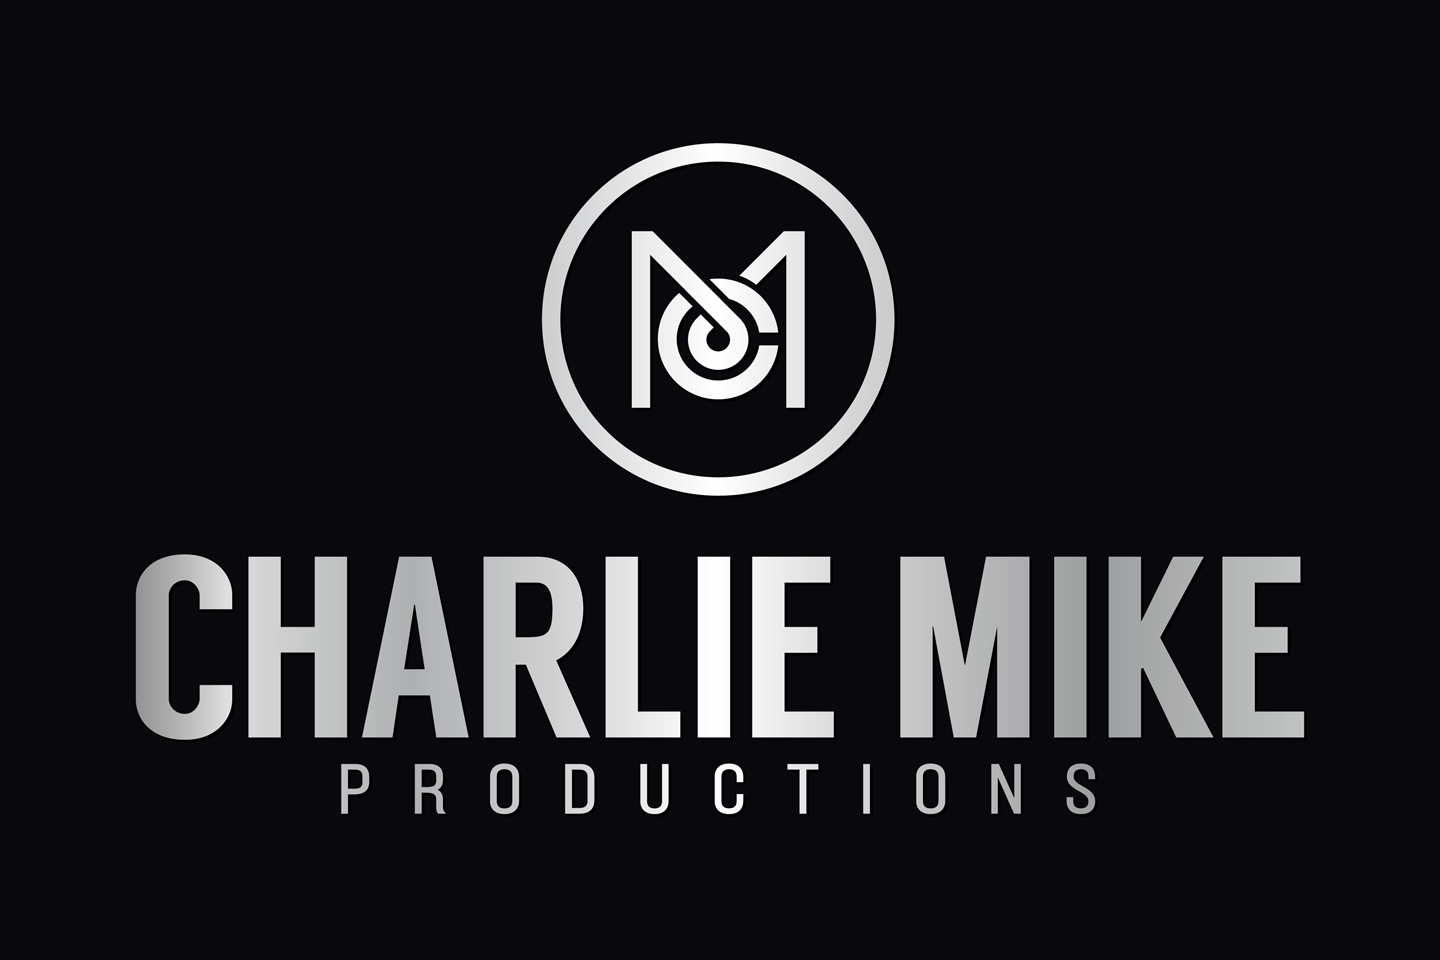 Charle Mike Productions